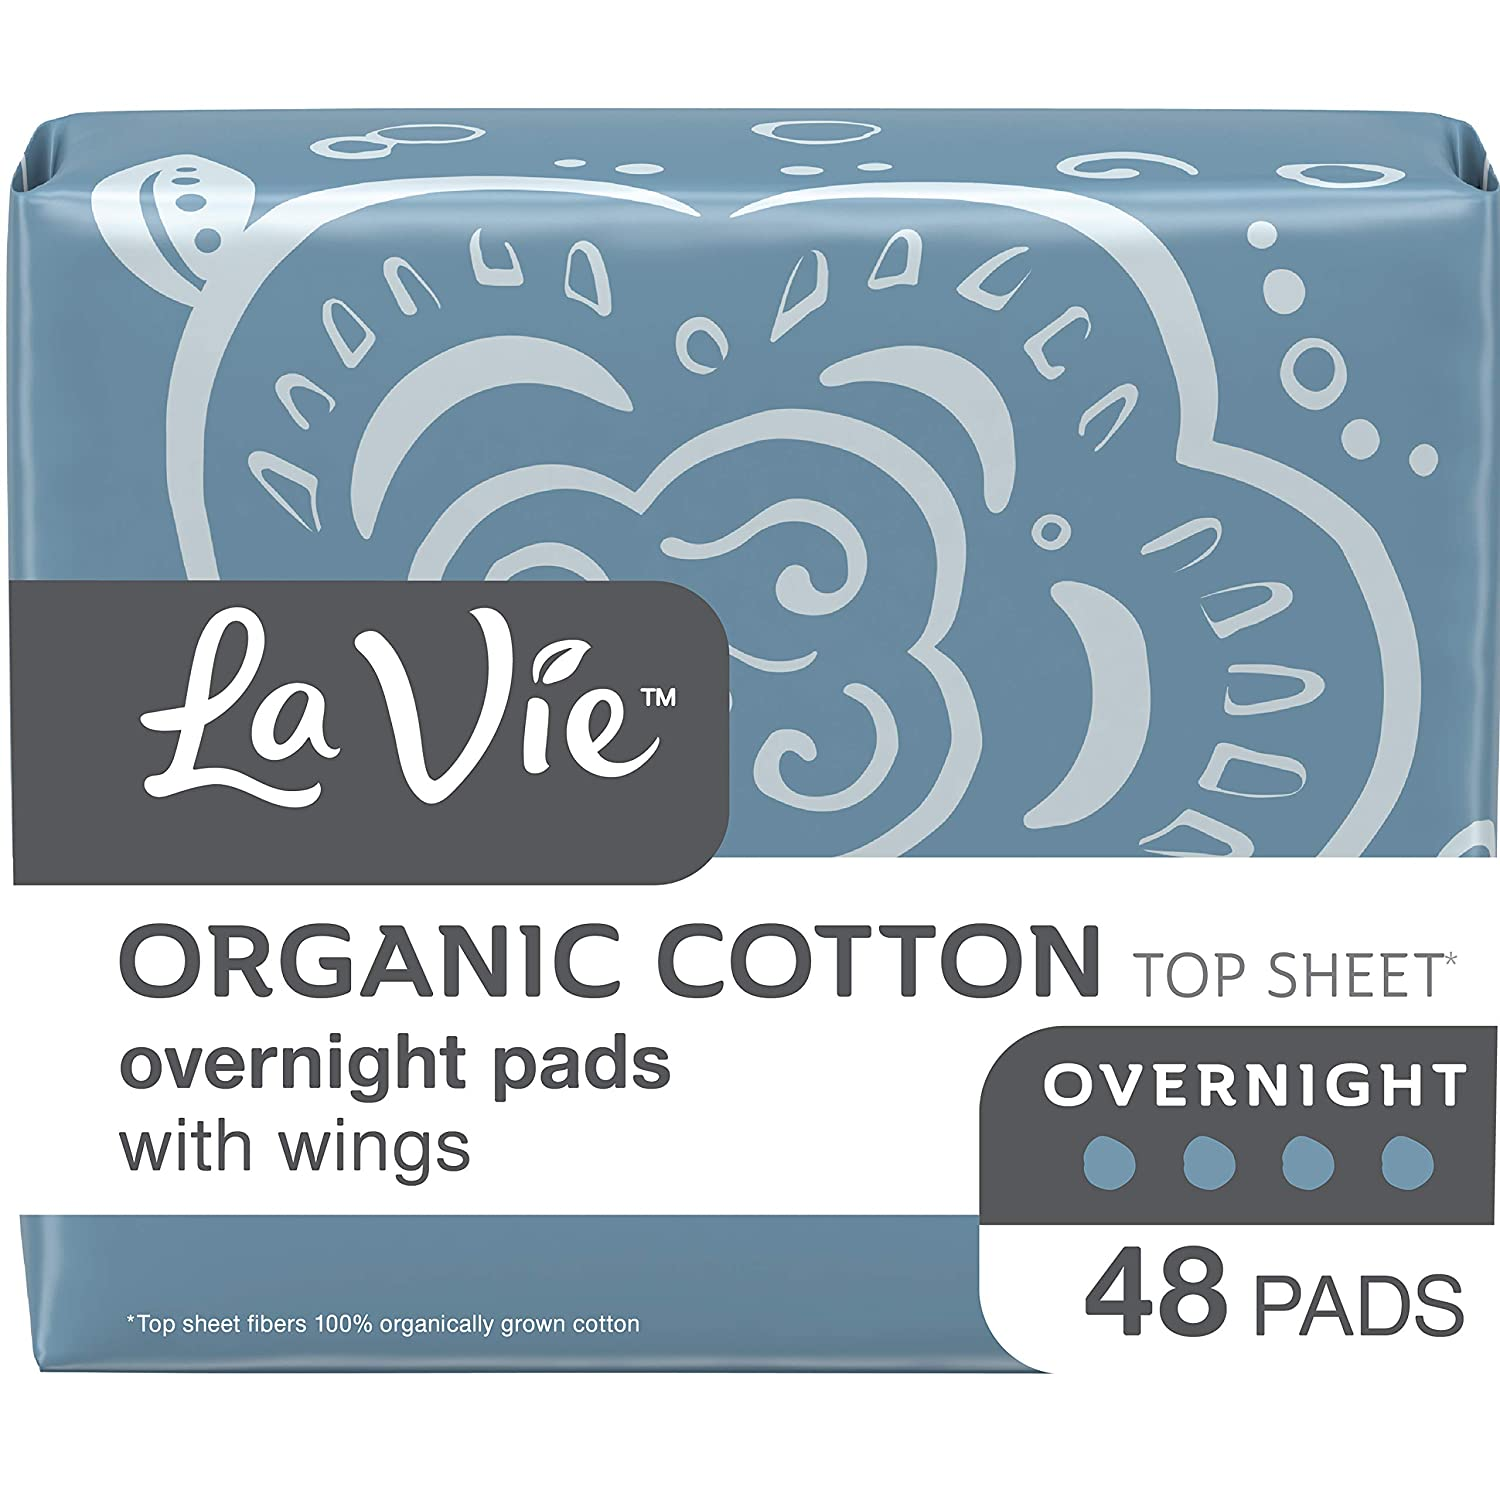 La Vie Organic Cotton Top Sheet* Feminine or Postpartum Pads with Wings, Overnight, Long, 48 Count